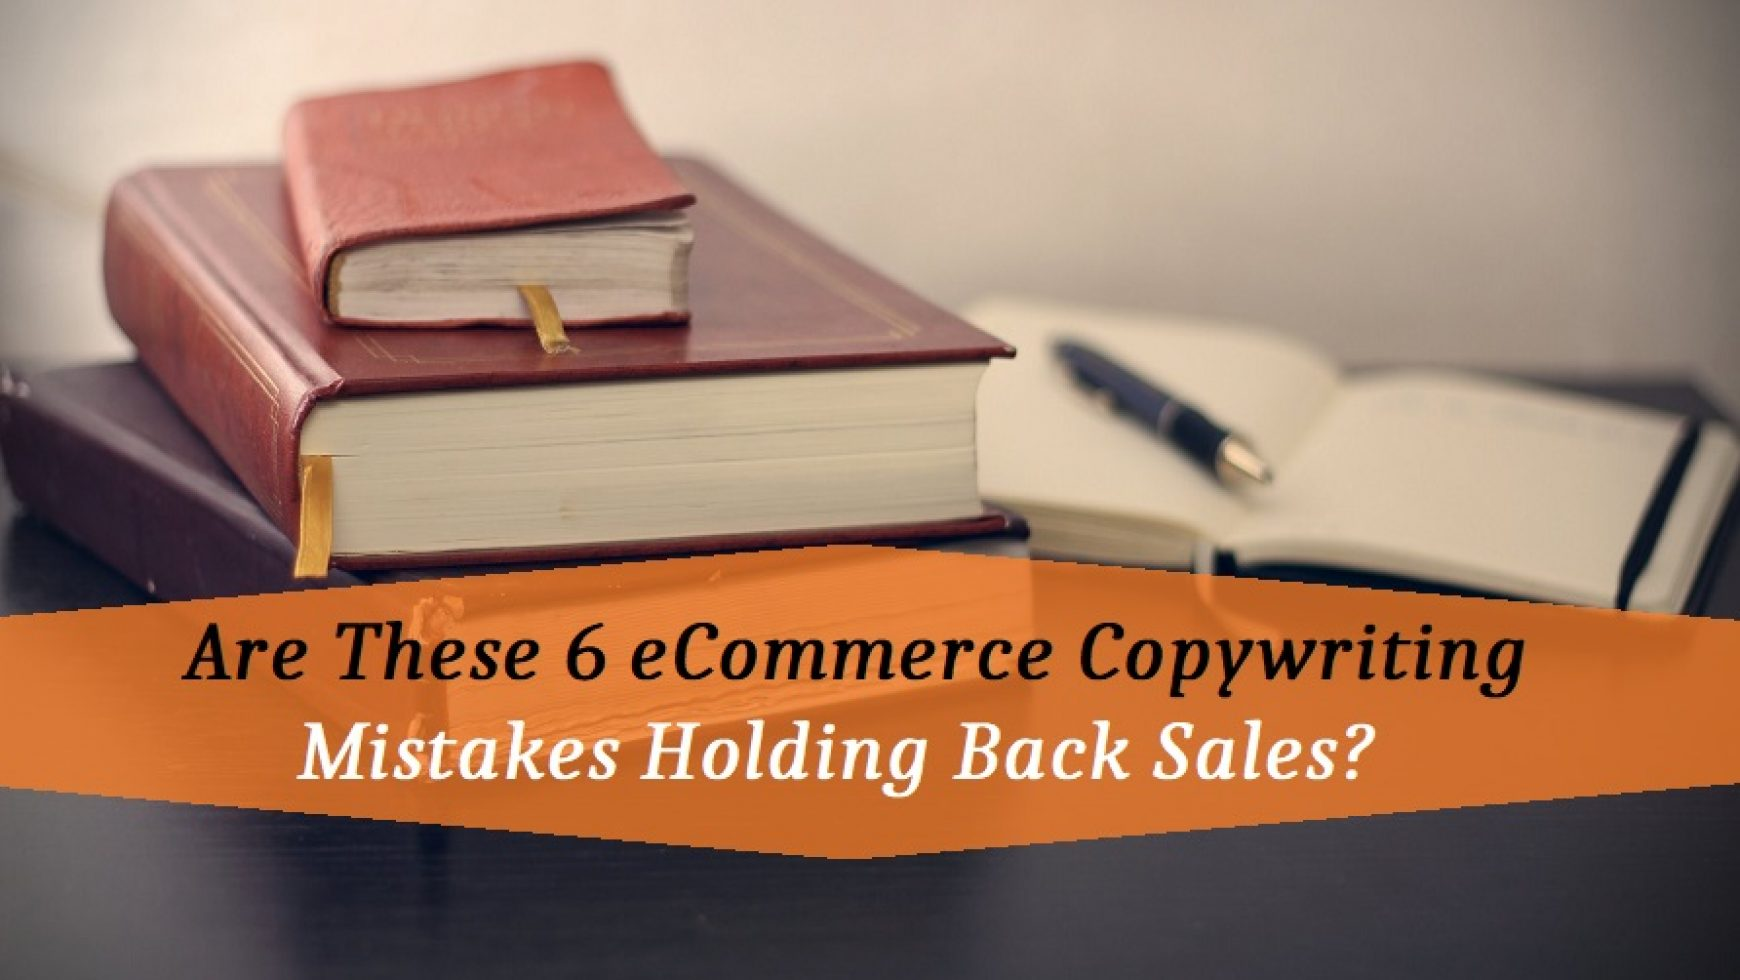 Are These 6 eCommerce Copywriting Mistakes Holding Back Sales